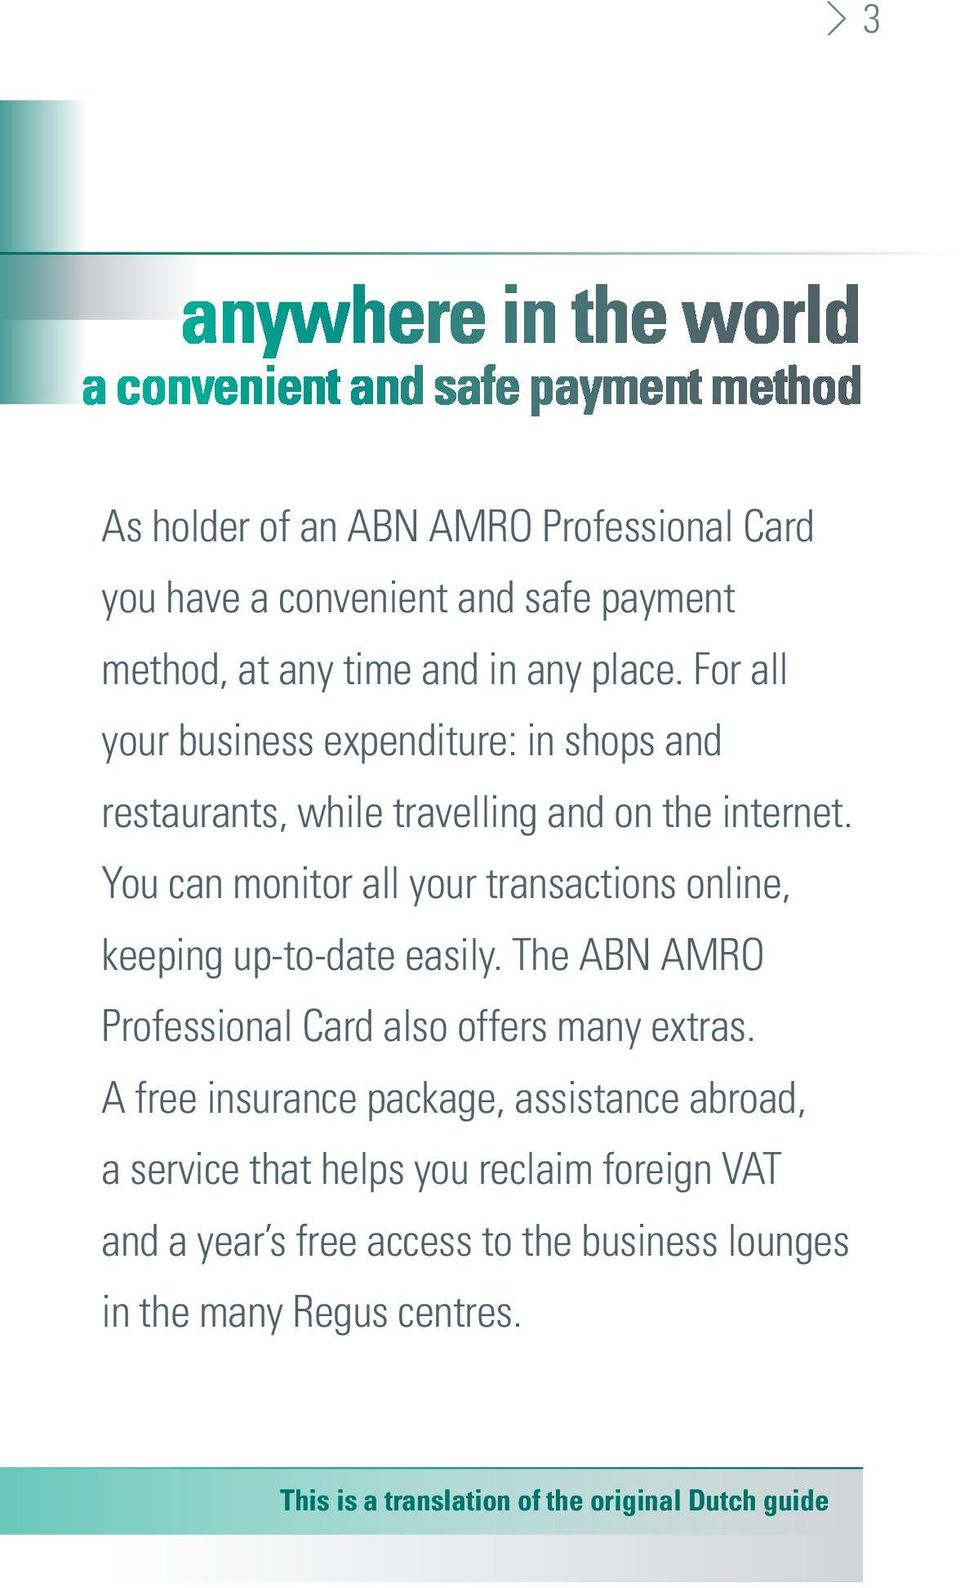 You can monitor all your transactions online, keeping up-to-date easily. The ABN AMRO Professional Card also offers many extras.